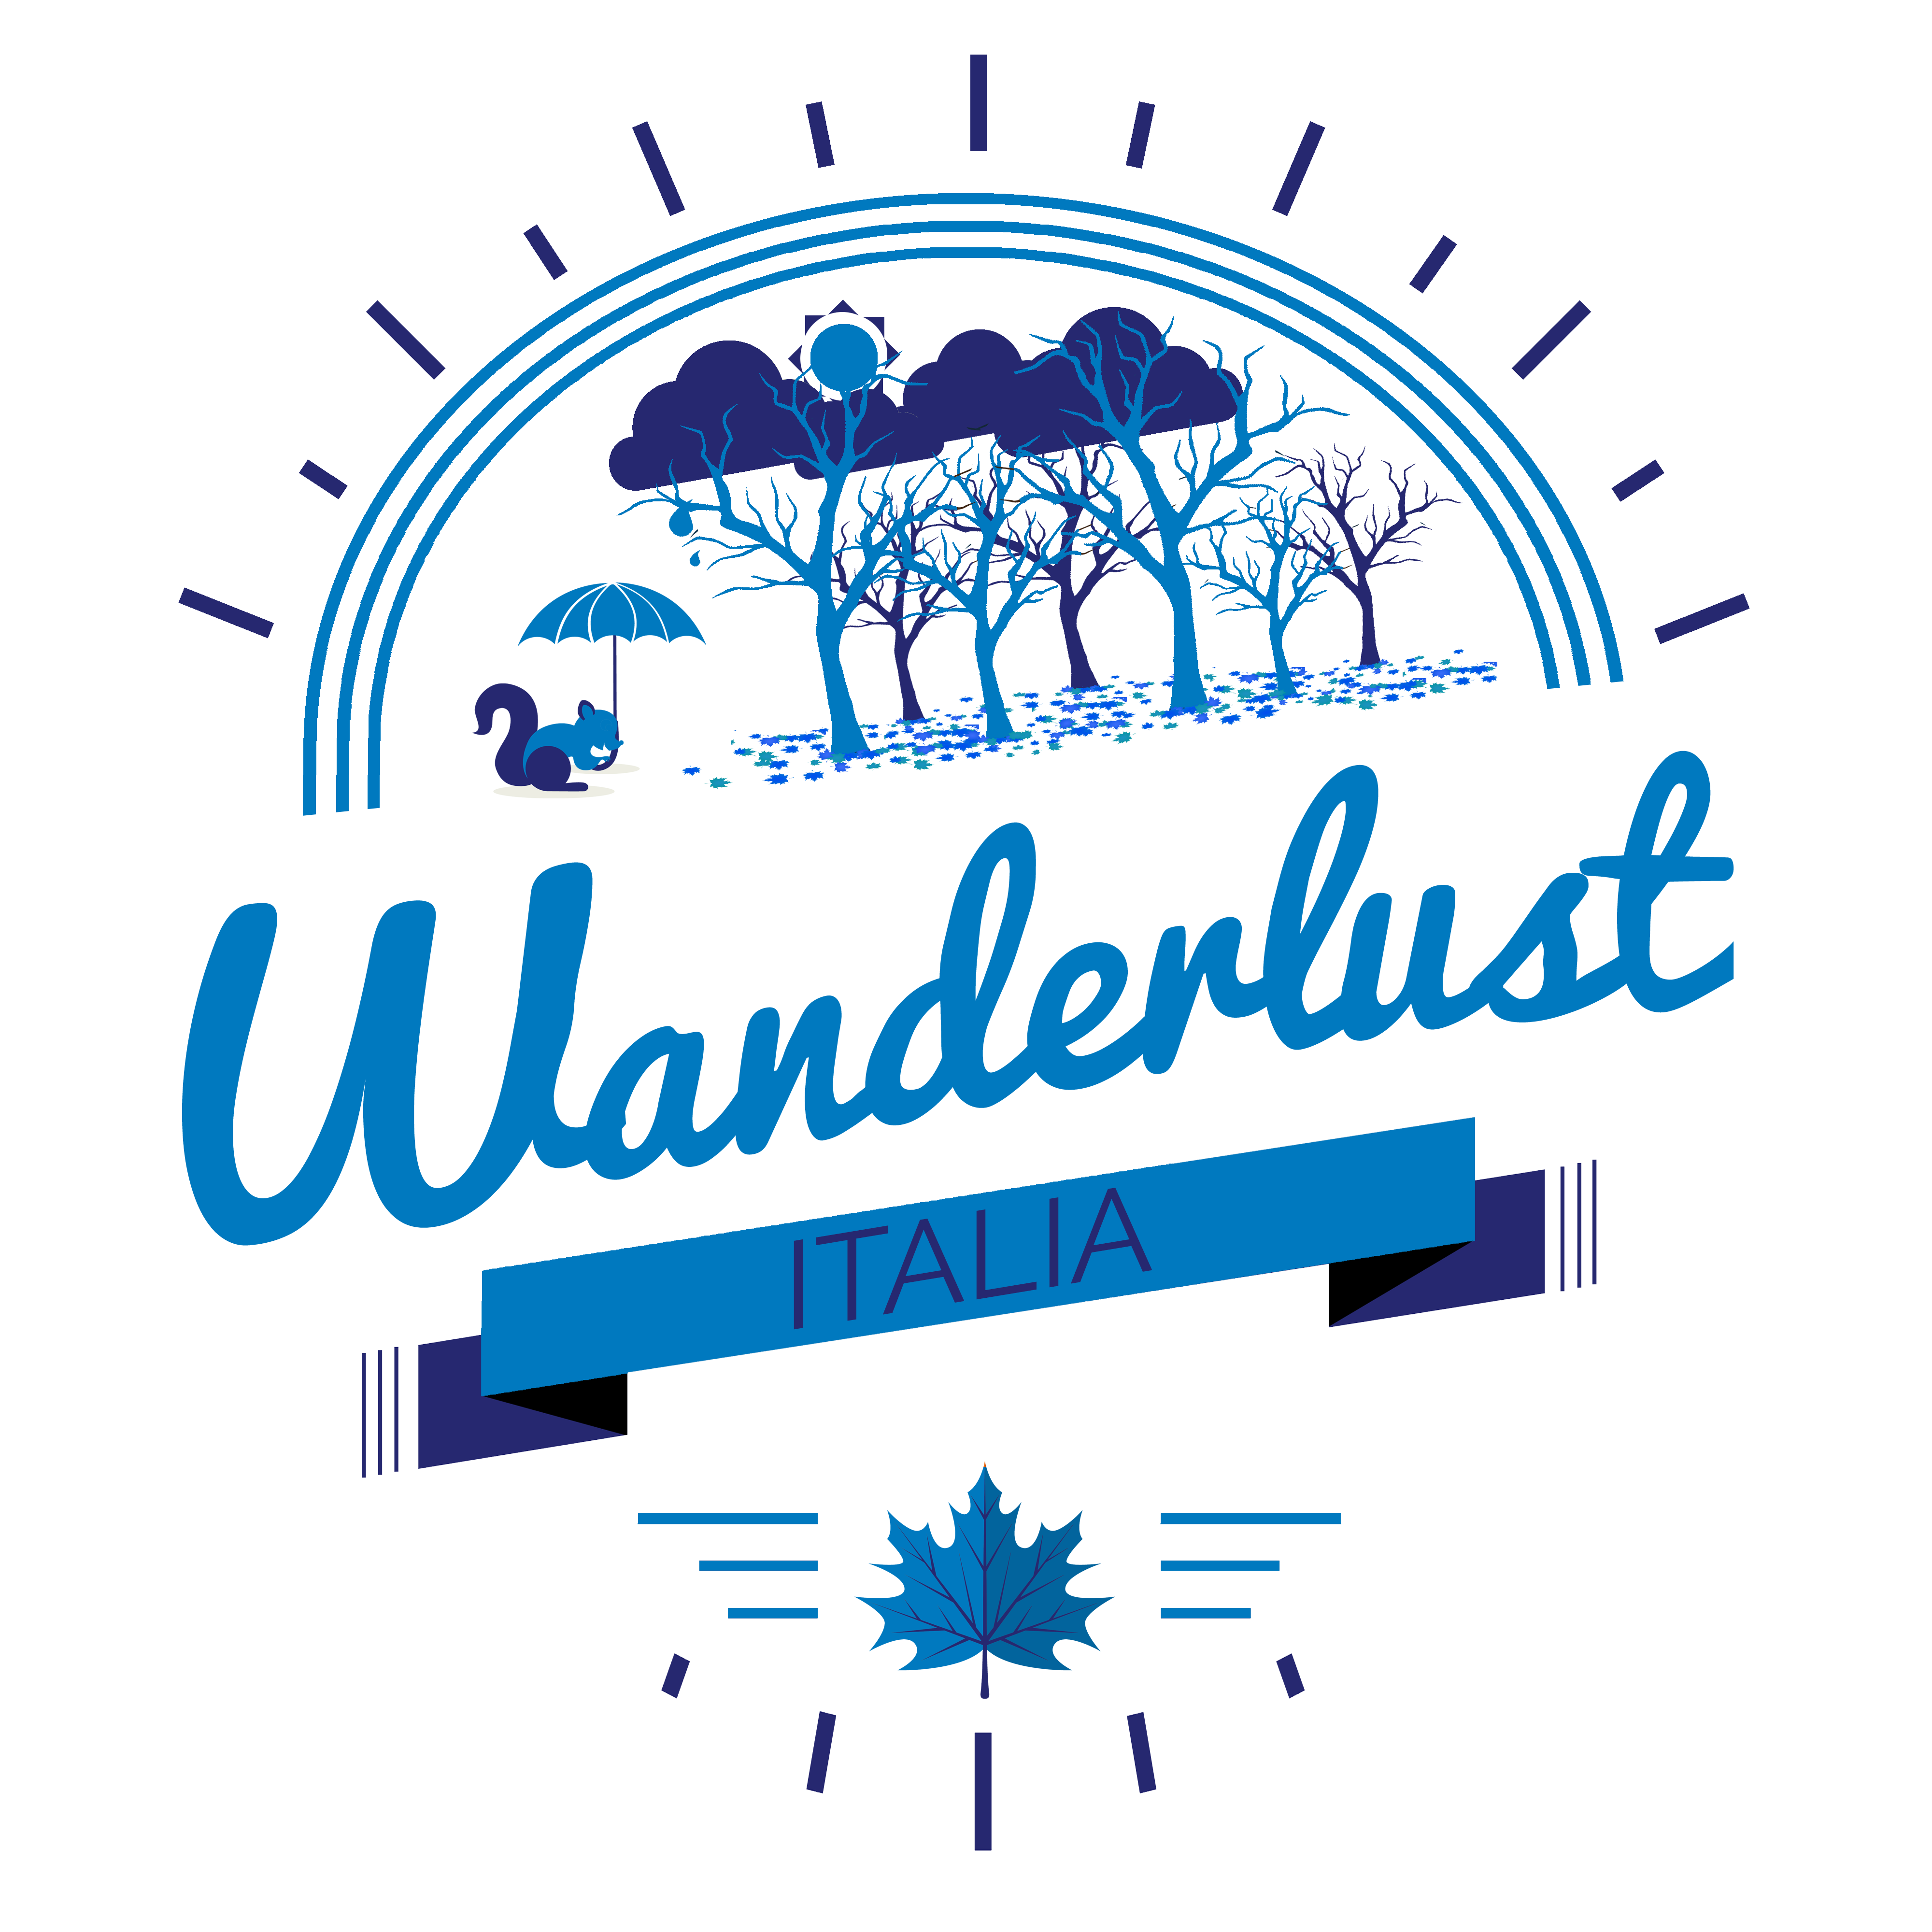 www.wanderlustitalia.it